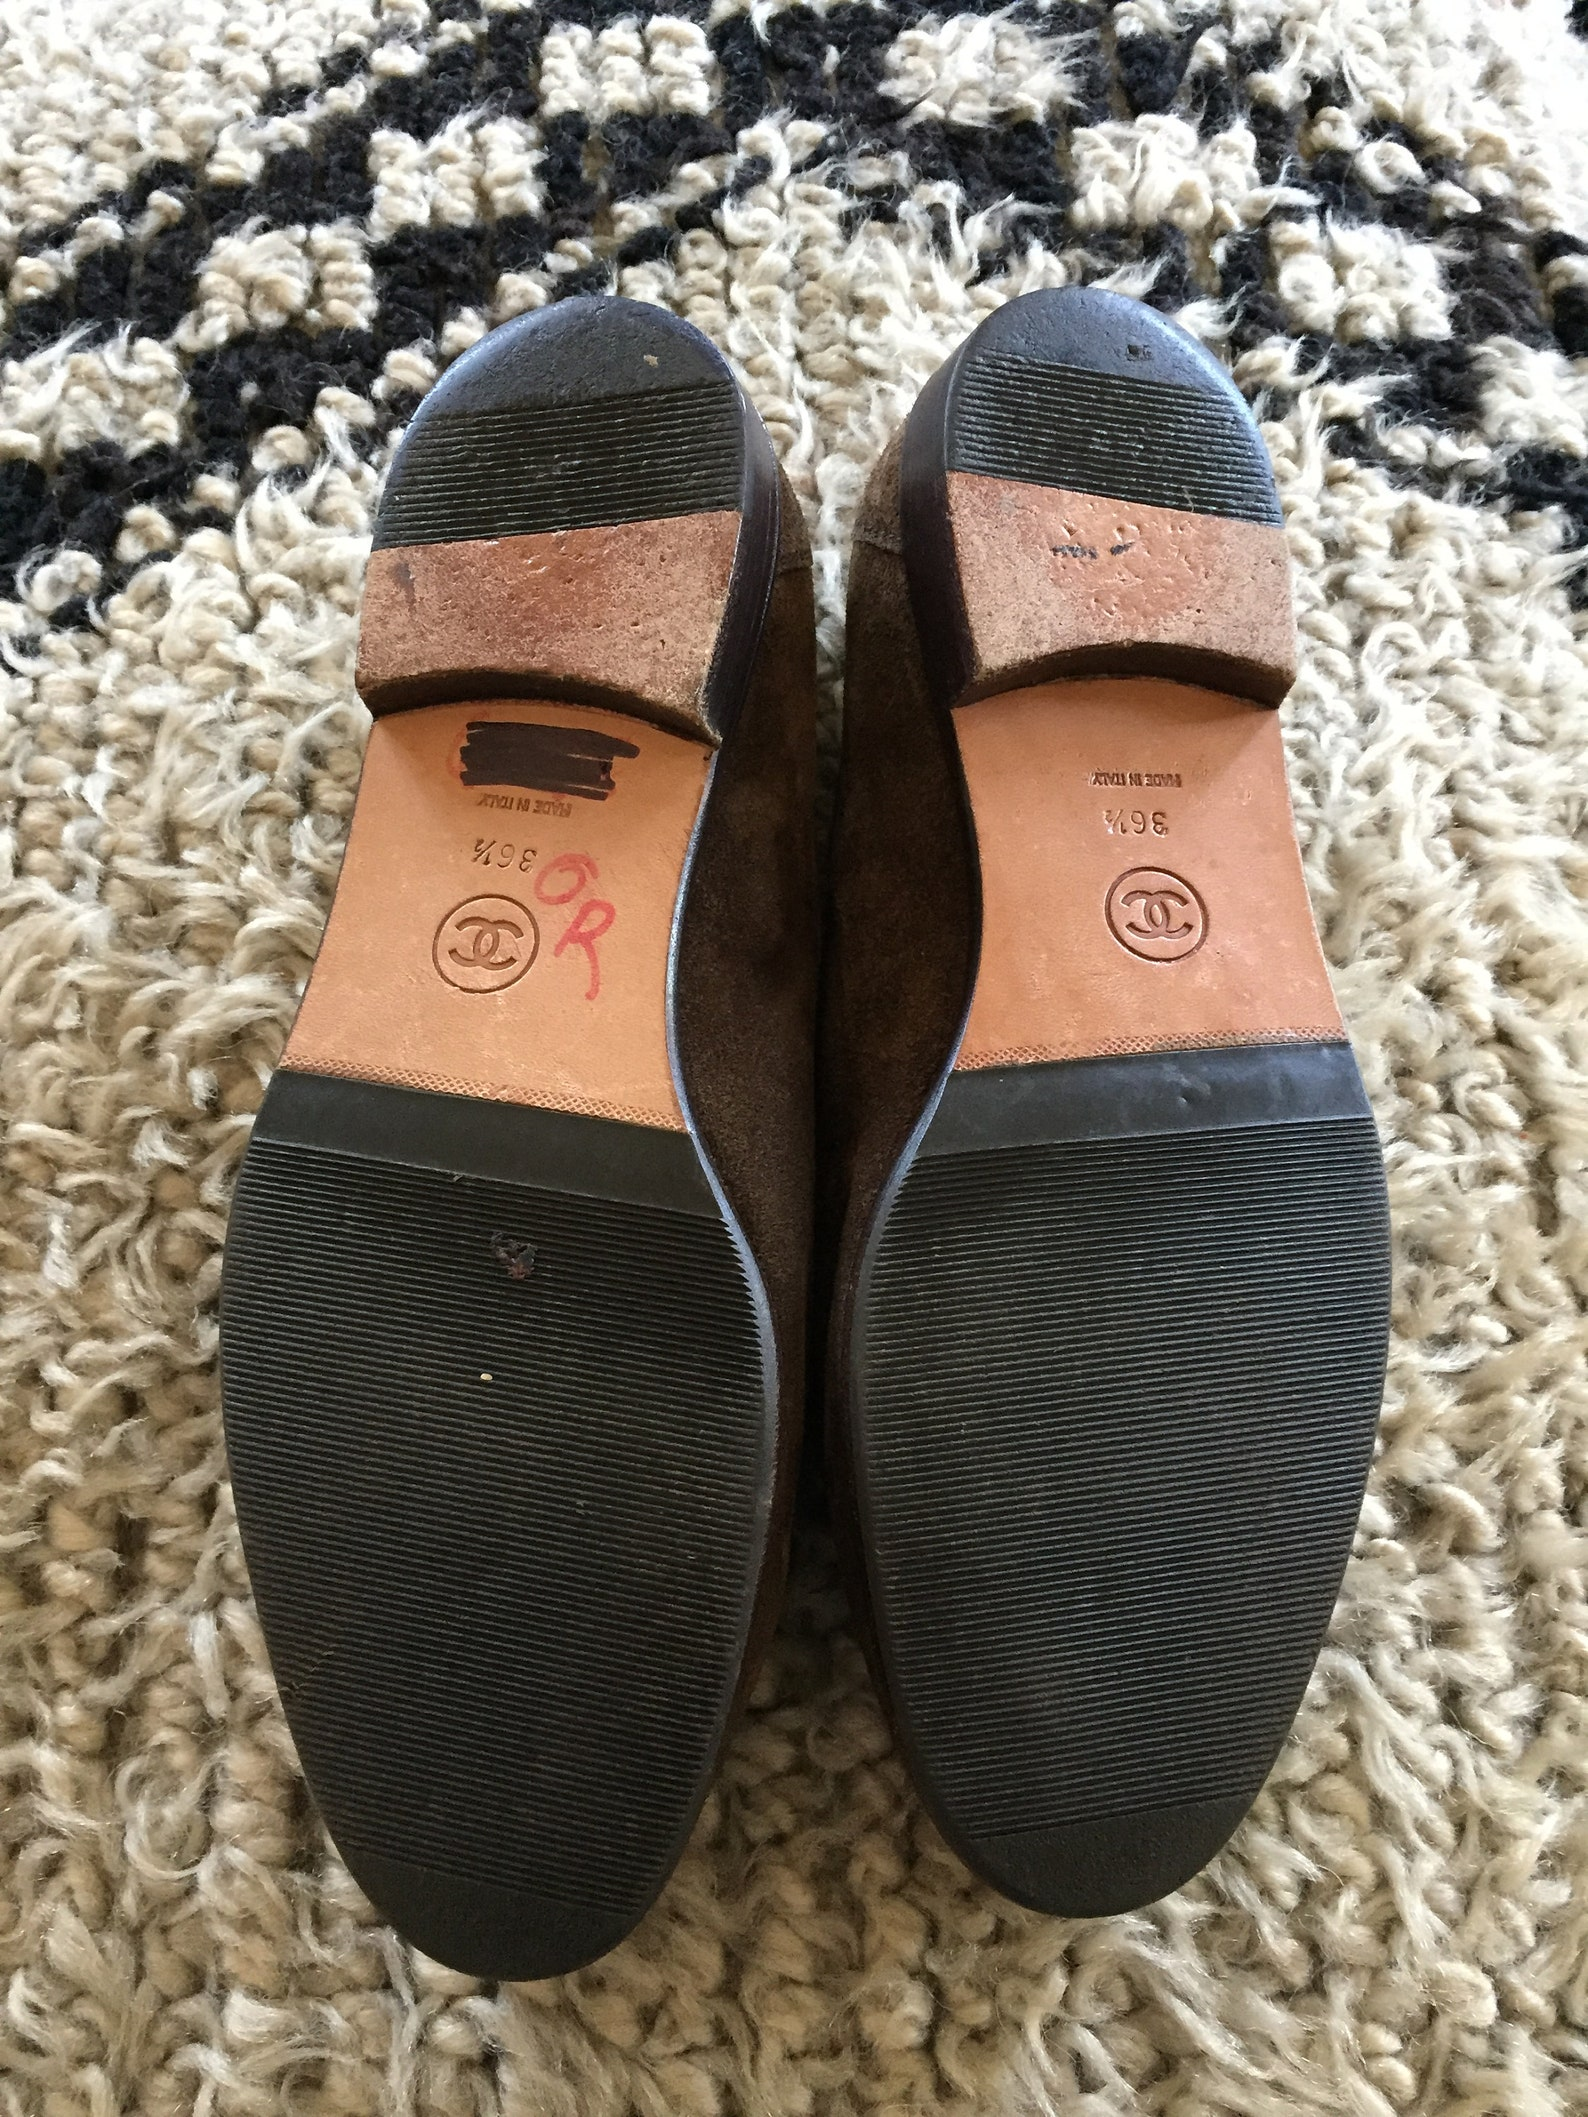 vintage chanel cc logo brown tan suede leather loafers flats driving shoes smoking slippers ballet flats 36.5 us 6